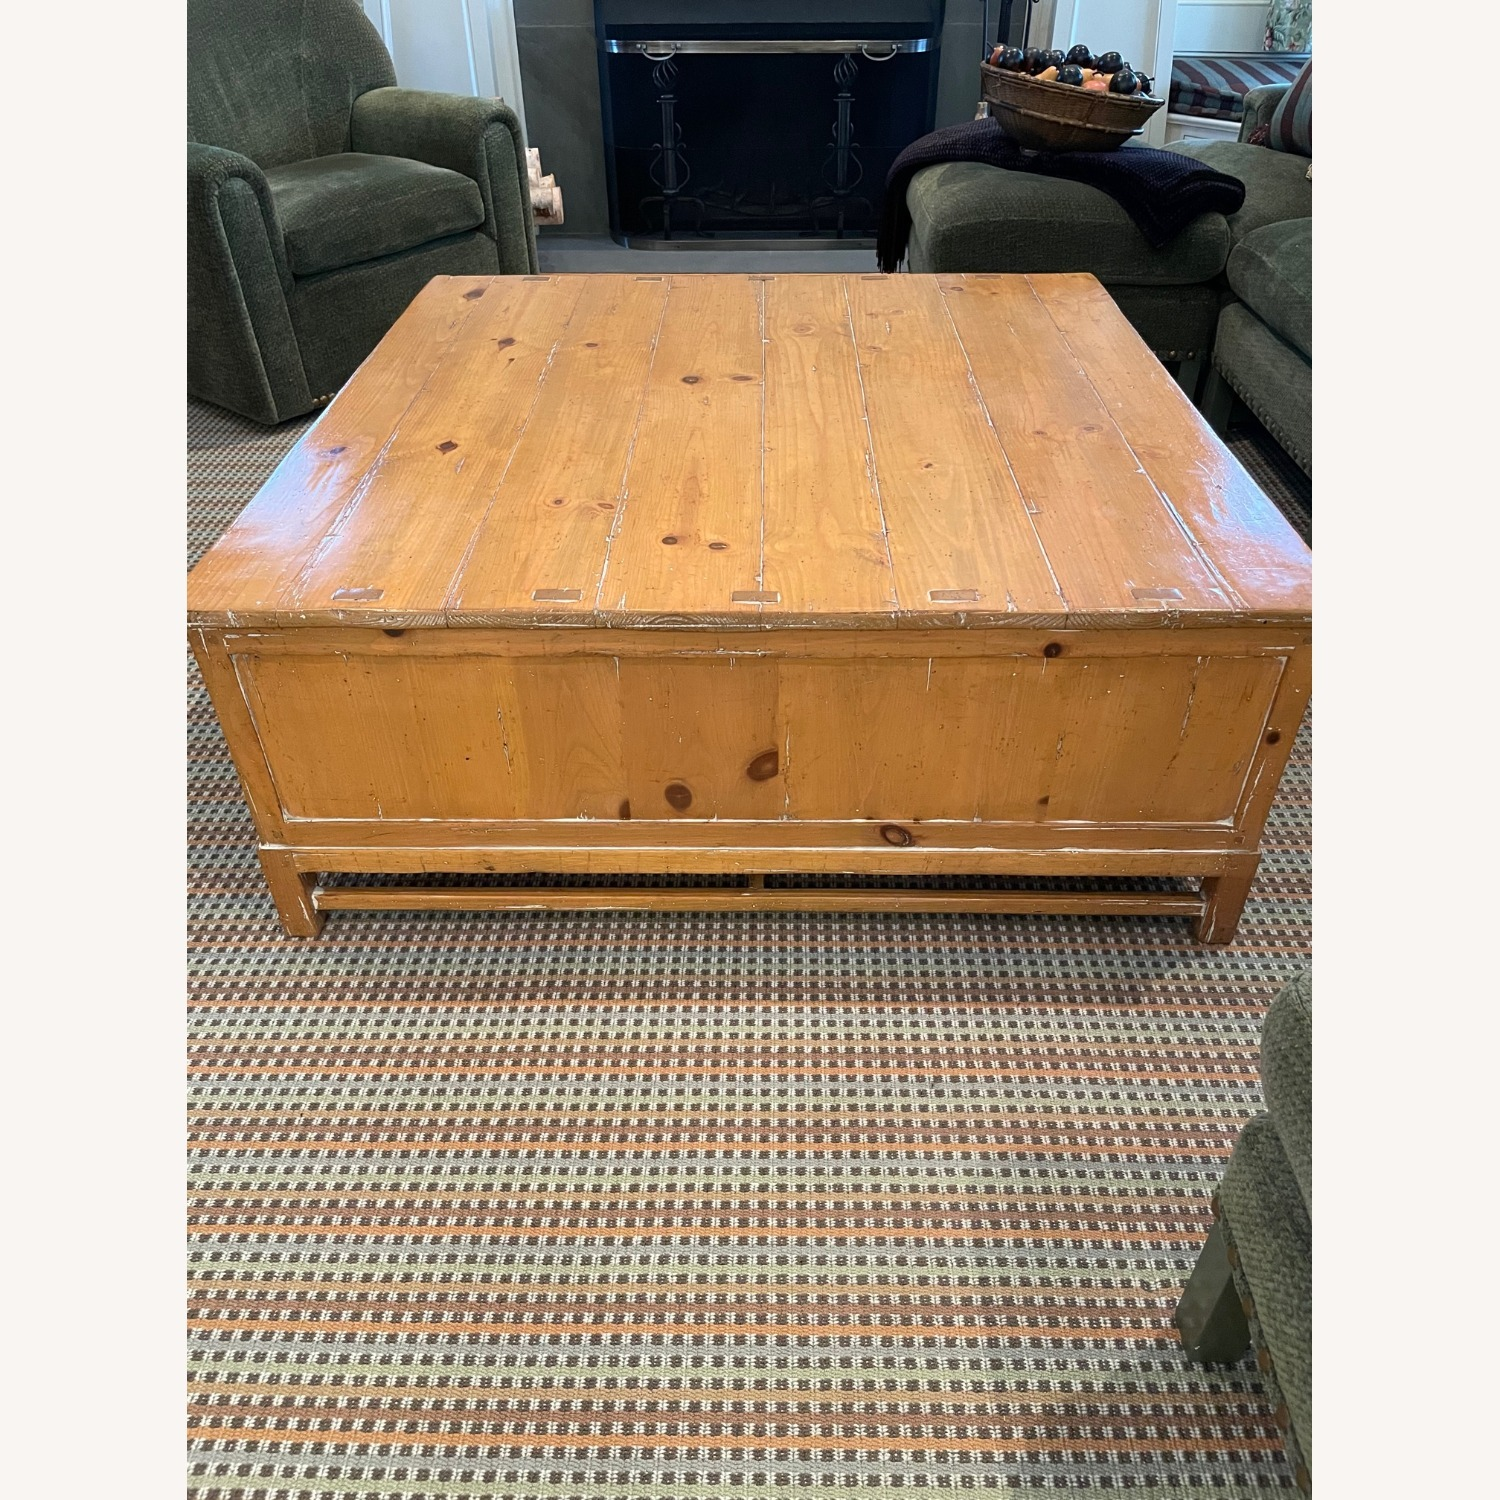 Guy Chaddock Rustic French Country Coffee Table - image-2